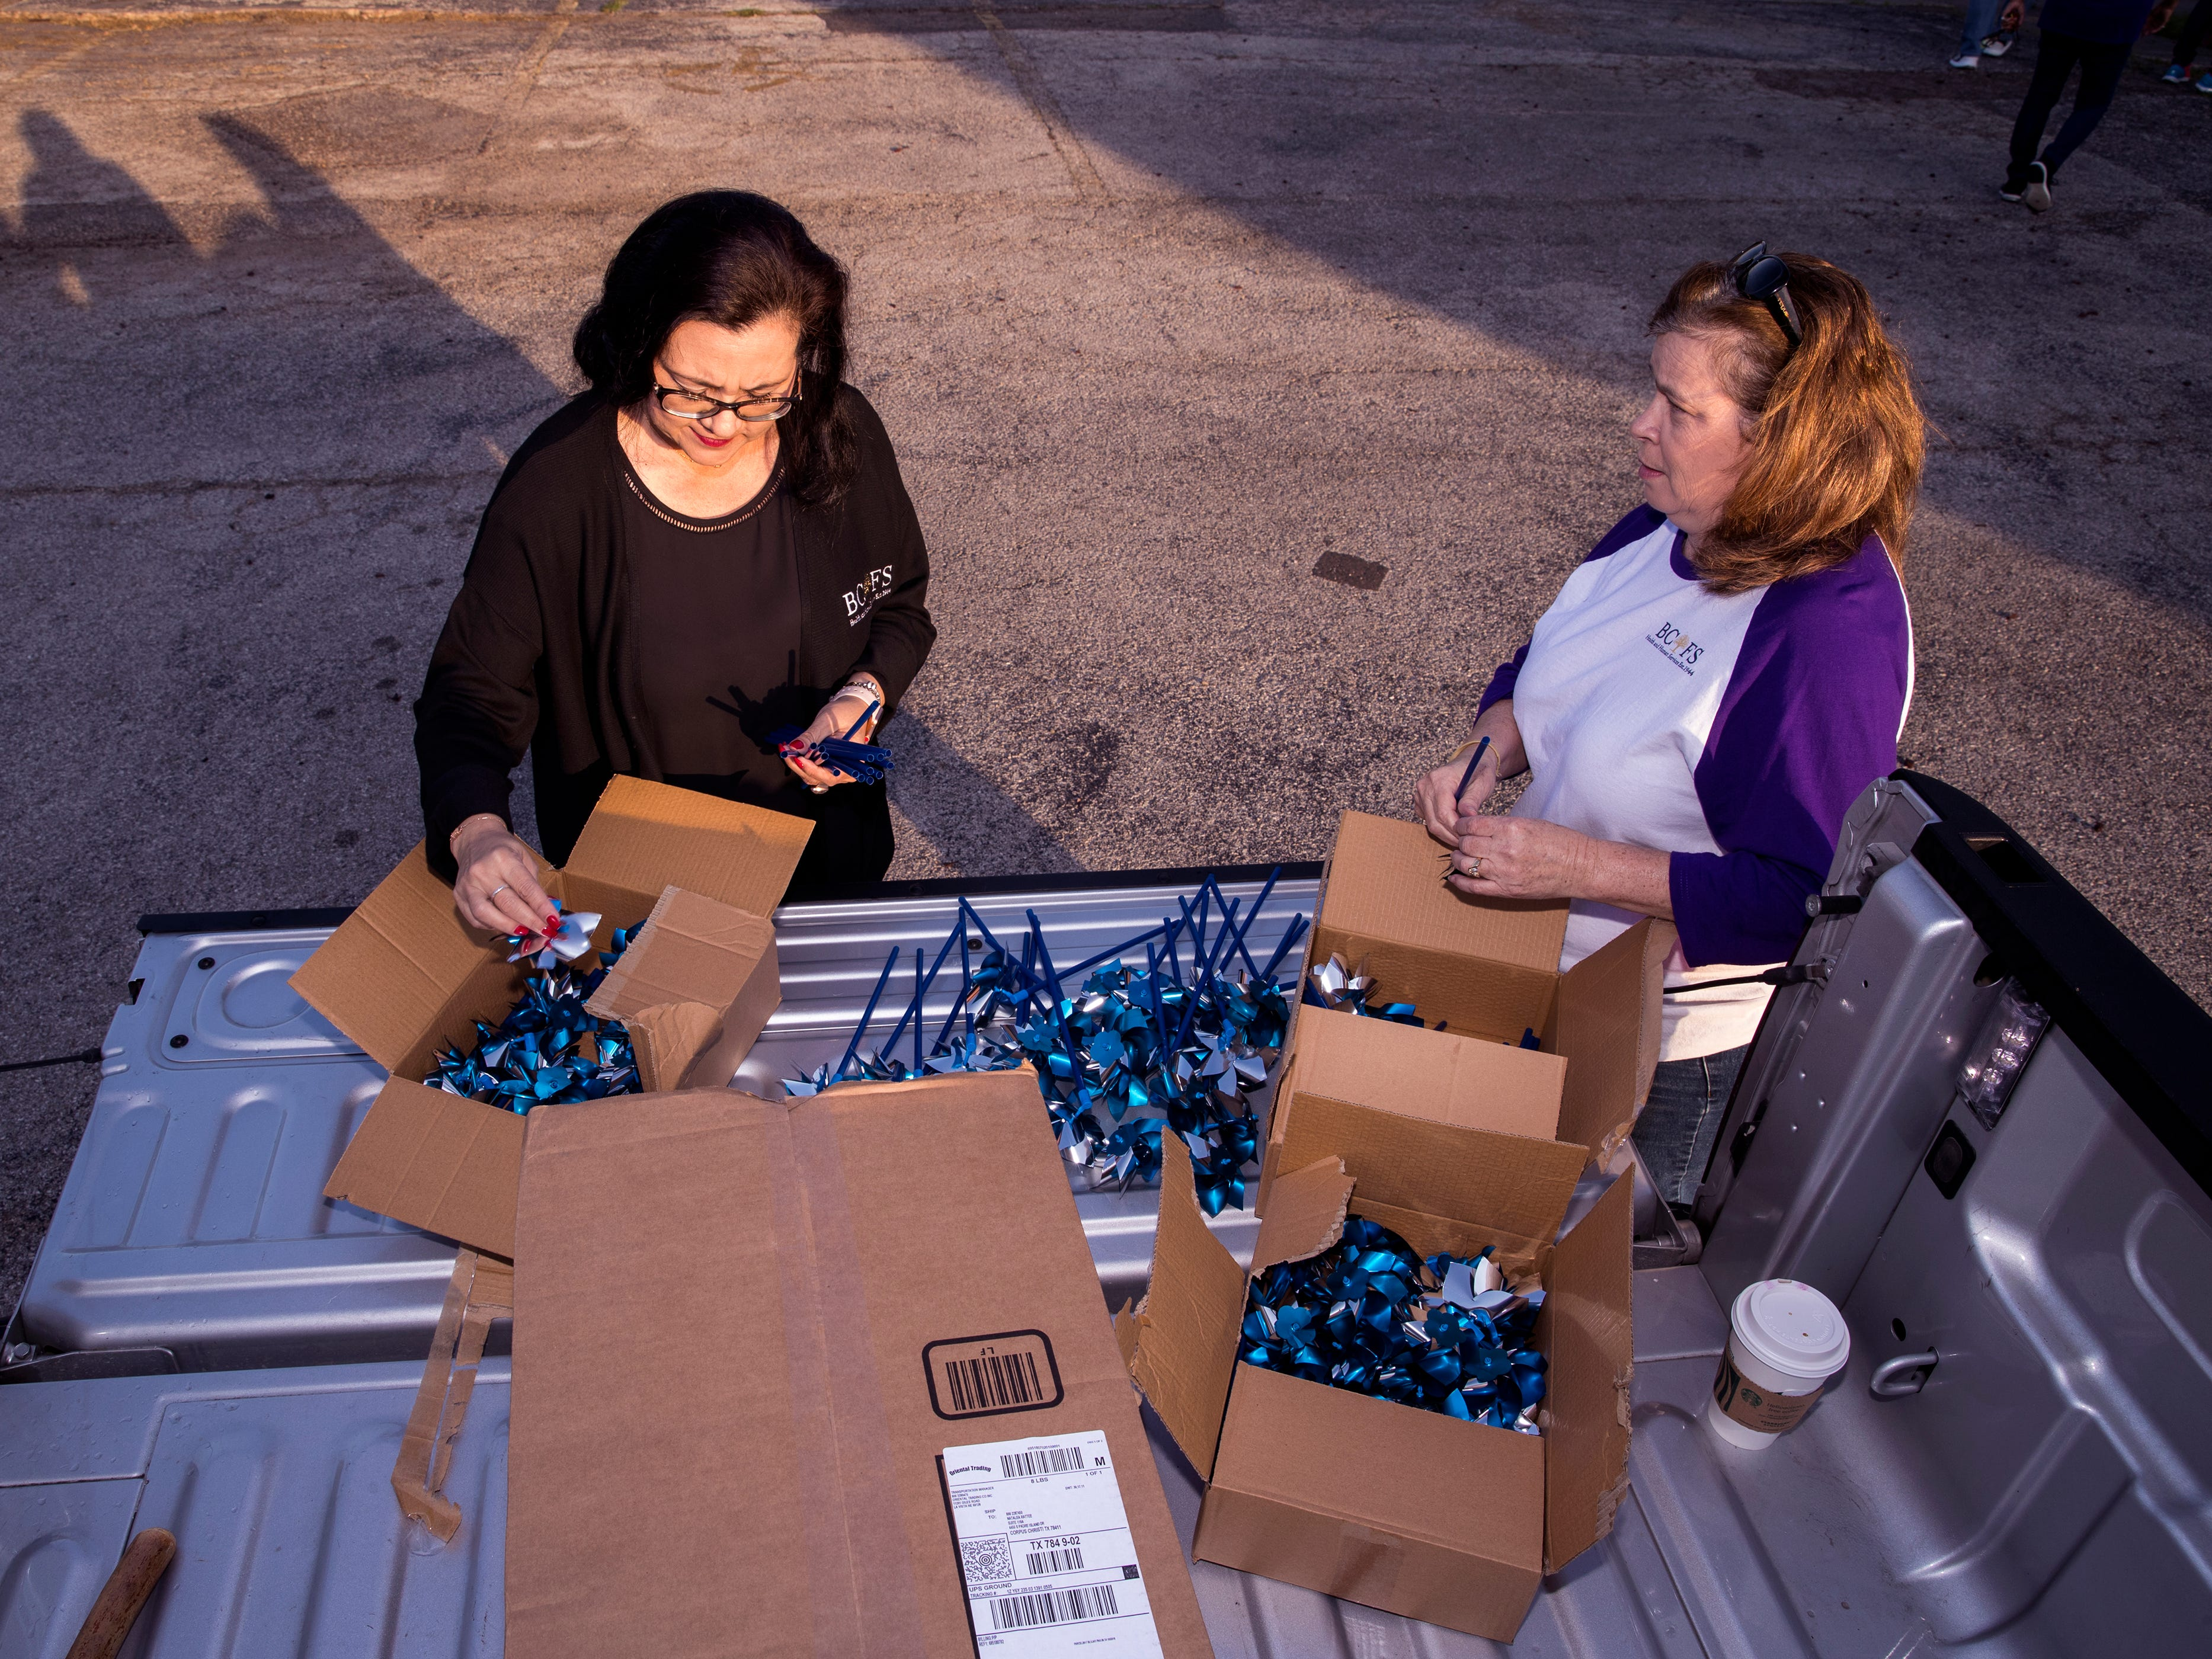 Marissa Cano (left) and Noemi Gomez assemble pinwheels to be installed in front of CASA of the Coastal Bend on Friday, March 29, 2019. The 1,066 pinwheels represent a child from the Coastal Bend who was in foster care last year and will stay up throughout the month of April, which is Child Abuse Awareness Month.